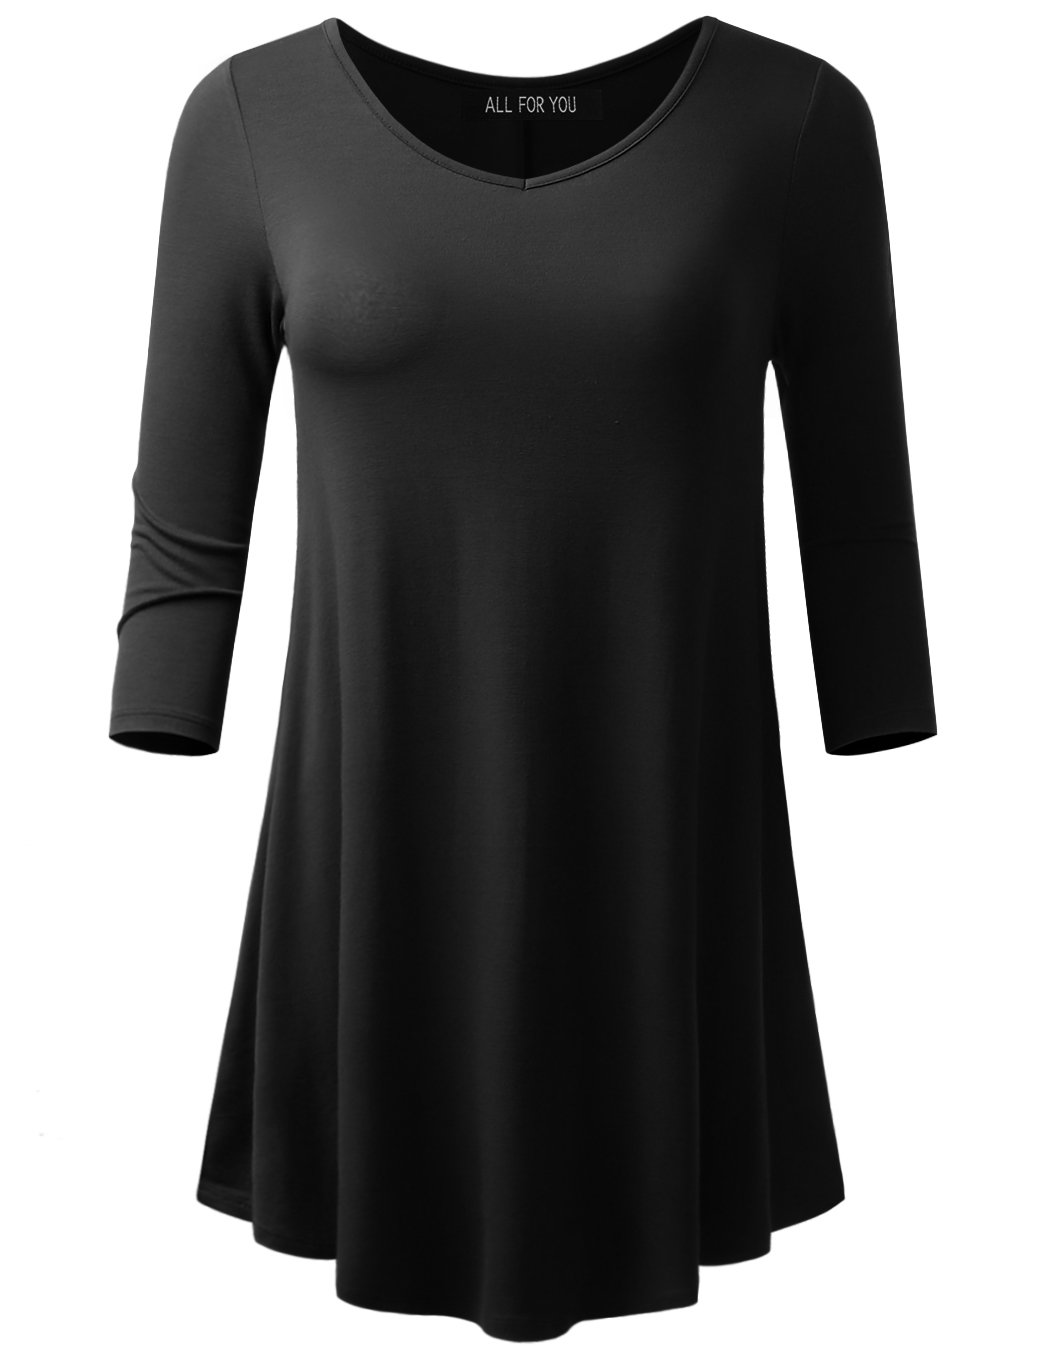 ALL FOR YOU Women's 3/4 Sleeve V-neck Flare Hem Tunic Black X-Large